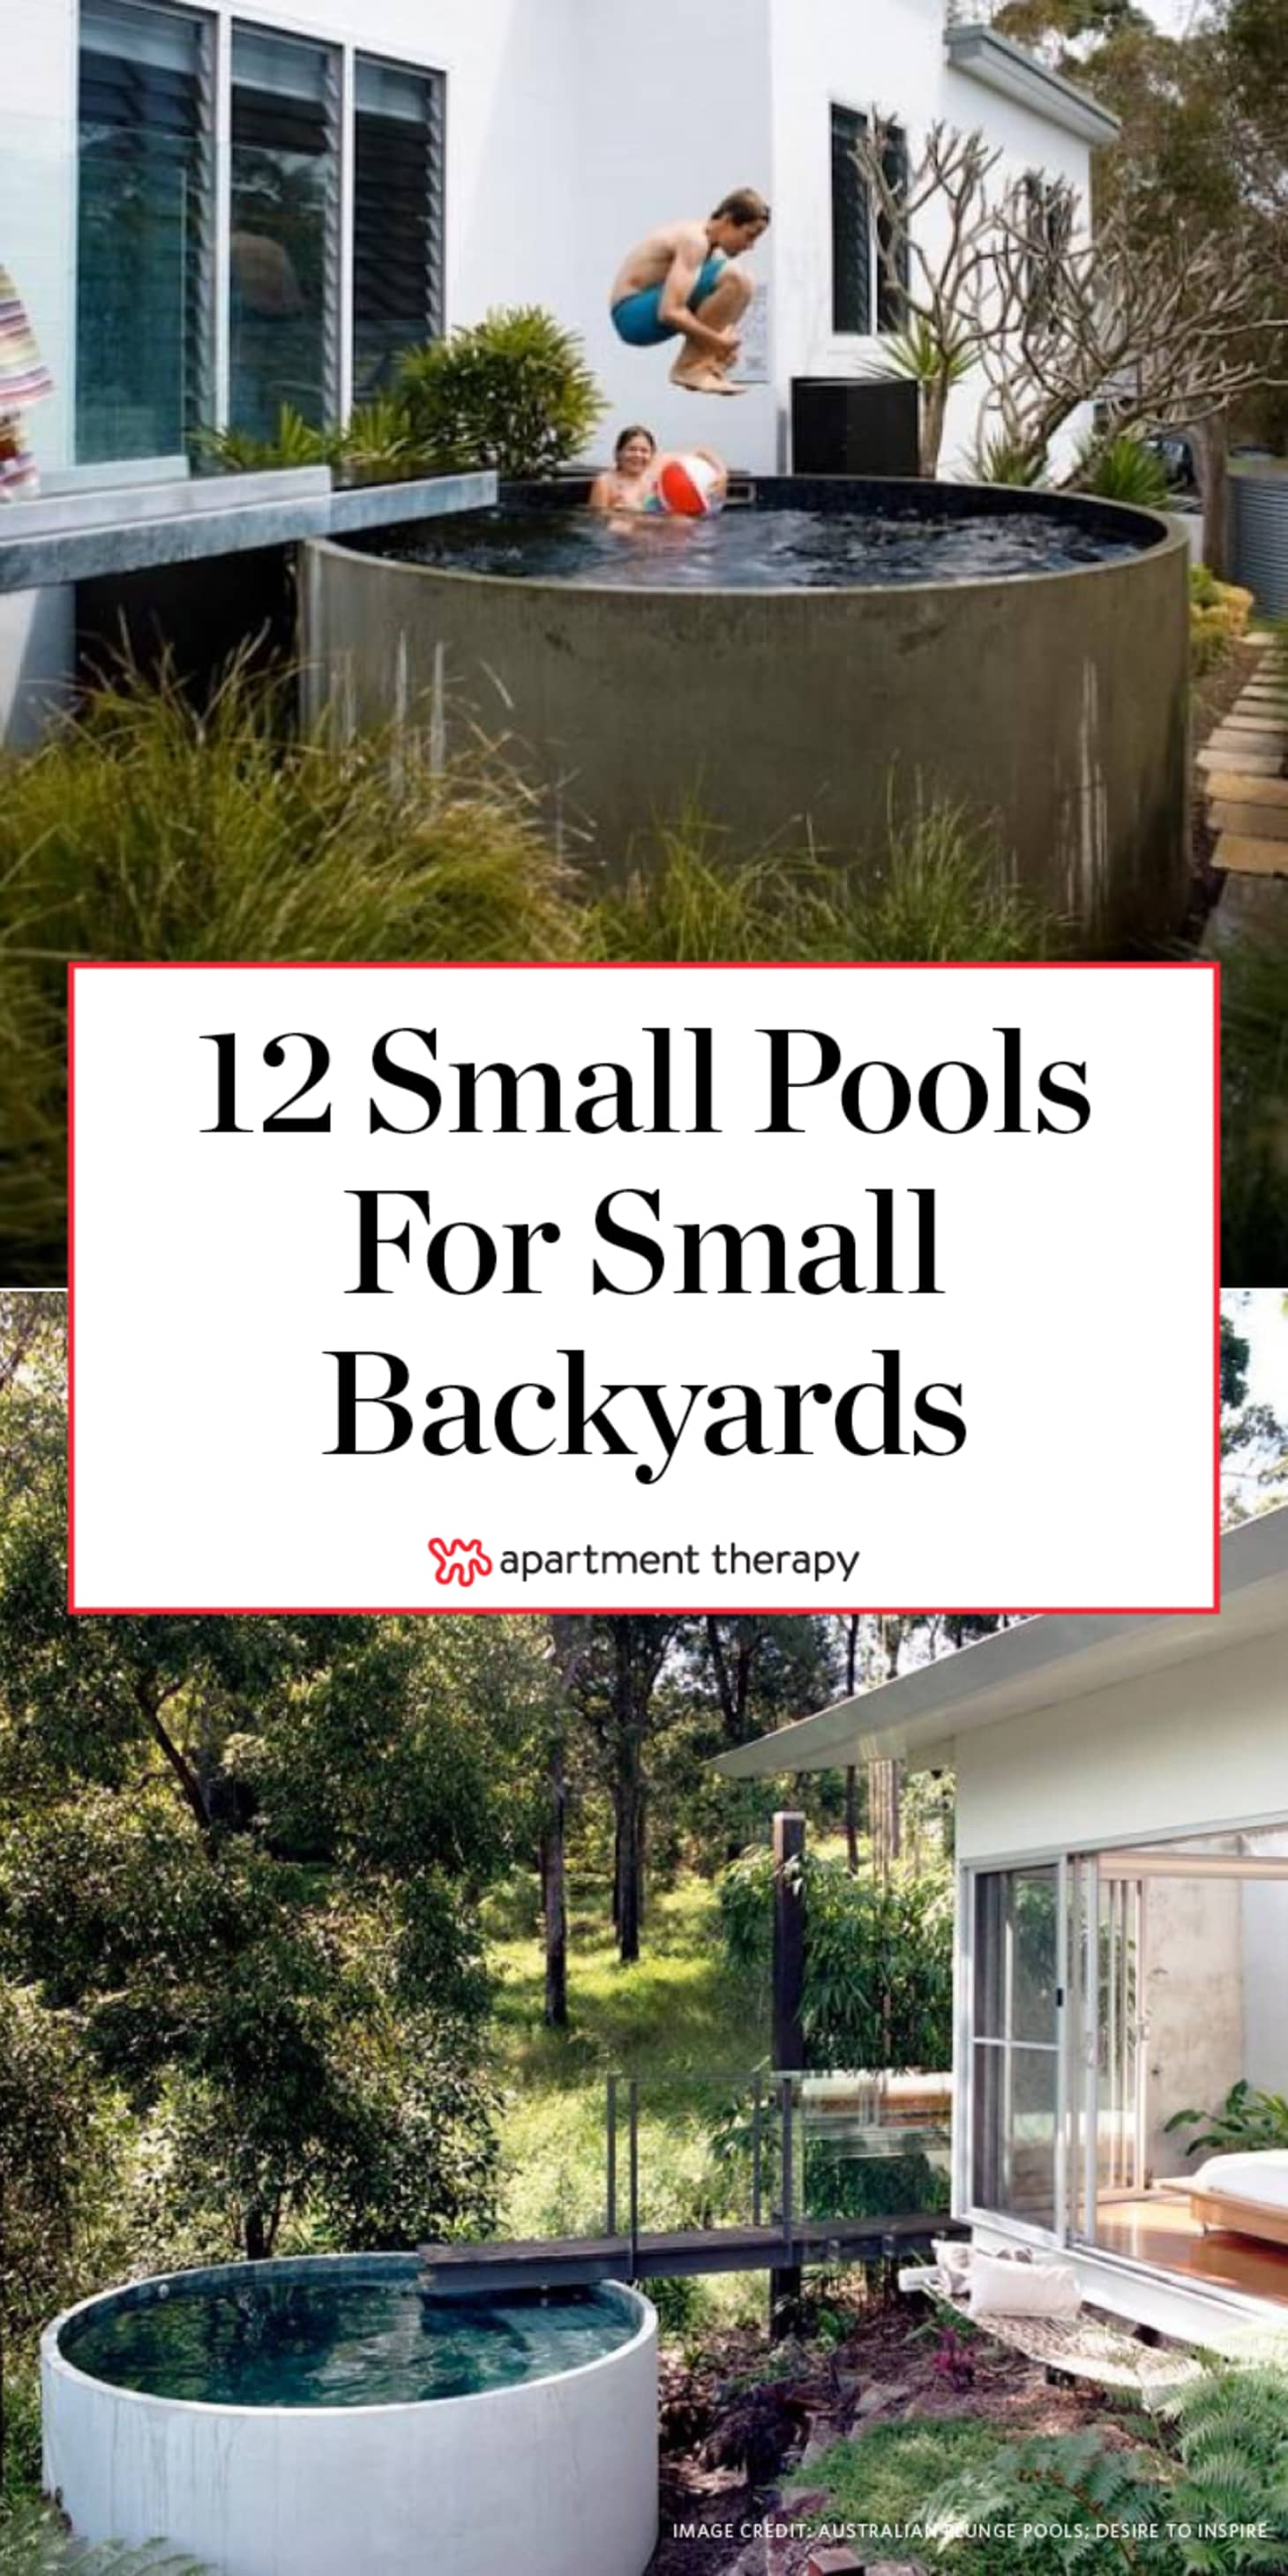 12 Small Pools for Small Backyards | Apartment Therapy on small fiberglass swimming pools, arizona backyard landscape ideas, small backyard fiberglass pools, backyard privacy ideas, small backyard wading pools, small backyard swimming pools, backyard steps ideas, small yard pools, small custom pools, small pools and spas, small above ground pools, small inground pools, small farm ideas, backyard design ideas, small pools for small backyards, small backyards with pools, small pool designs, small swimming pool slides, small backyard pavilions, small backyard lighting,